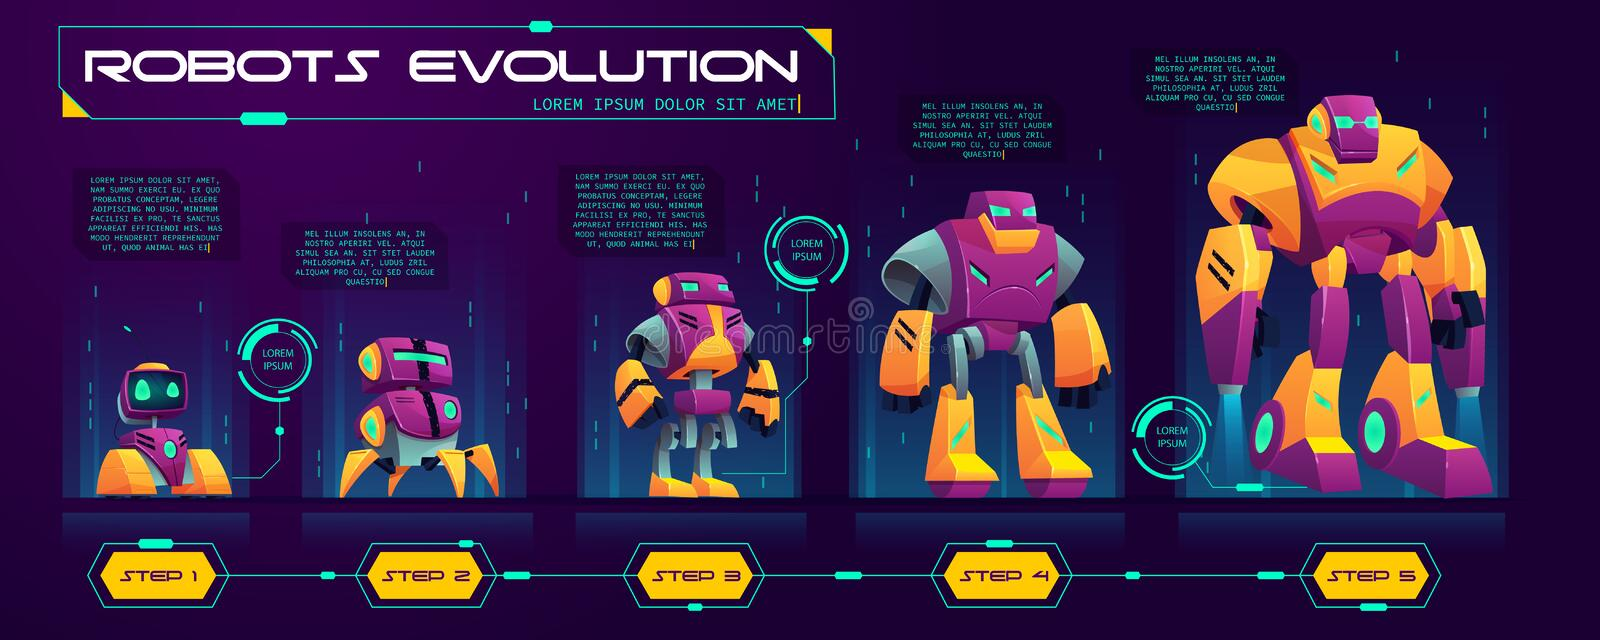 Robots evolution time line cartoon vector banner. Robots evolution cartoon vector banner. Robotics technologies progress stages from small droid to flying cyborg royalty free illustration